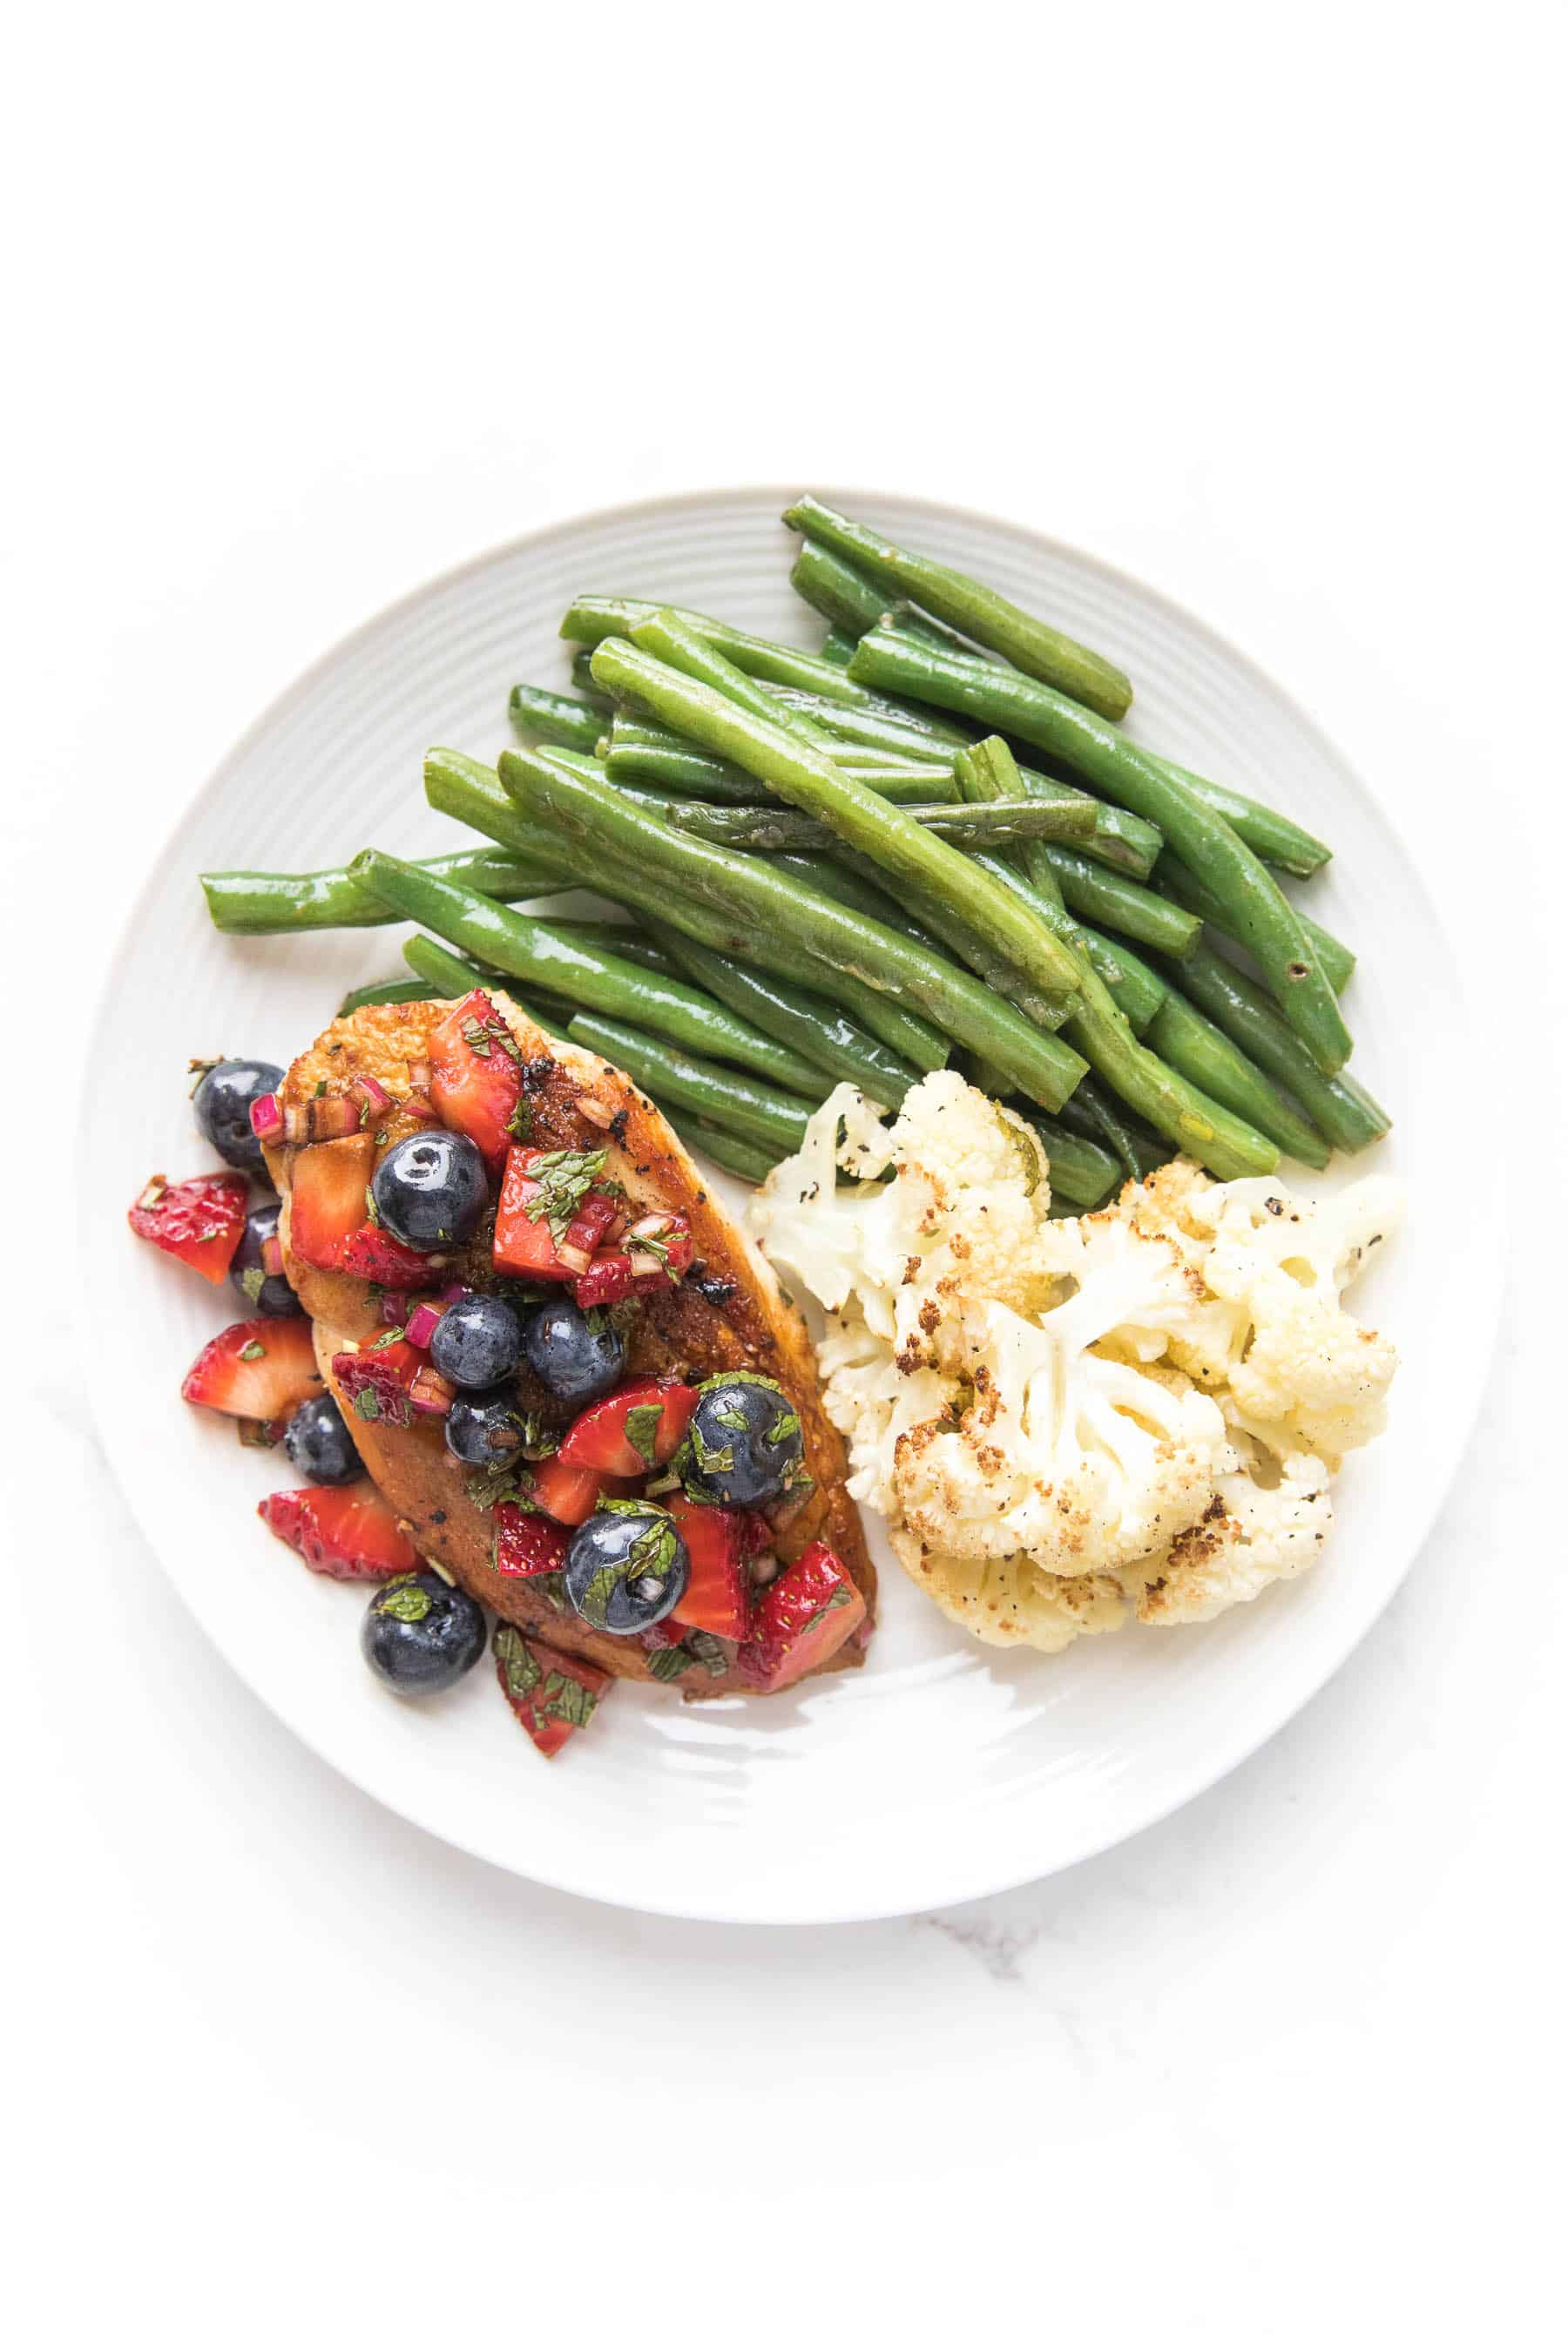 chicken topped with blueberry and strawberry salsa on a white plate and a white background with green beans and cauliflower